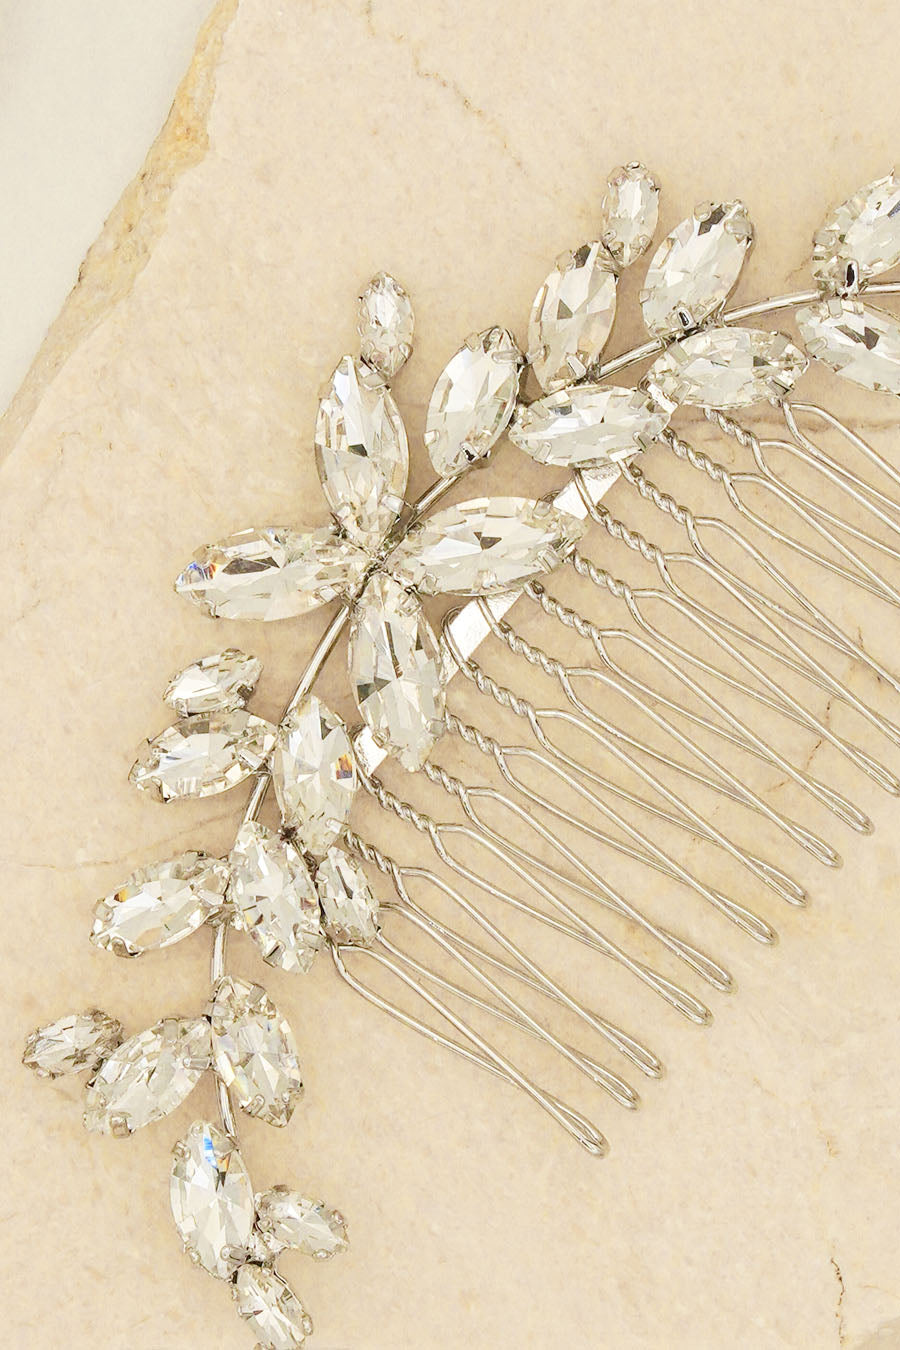 TEARDROP CRYSTALS FLOWERS EMBELLISHED HEADPIECE BRIDAL HAIR ACCESSORIES BY NARIANNA